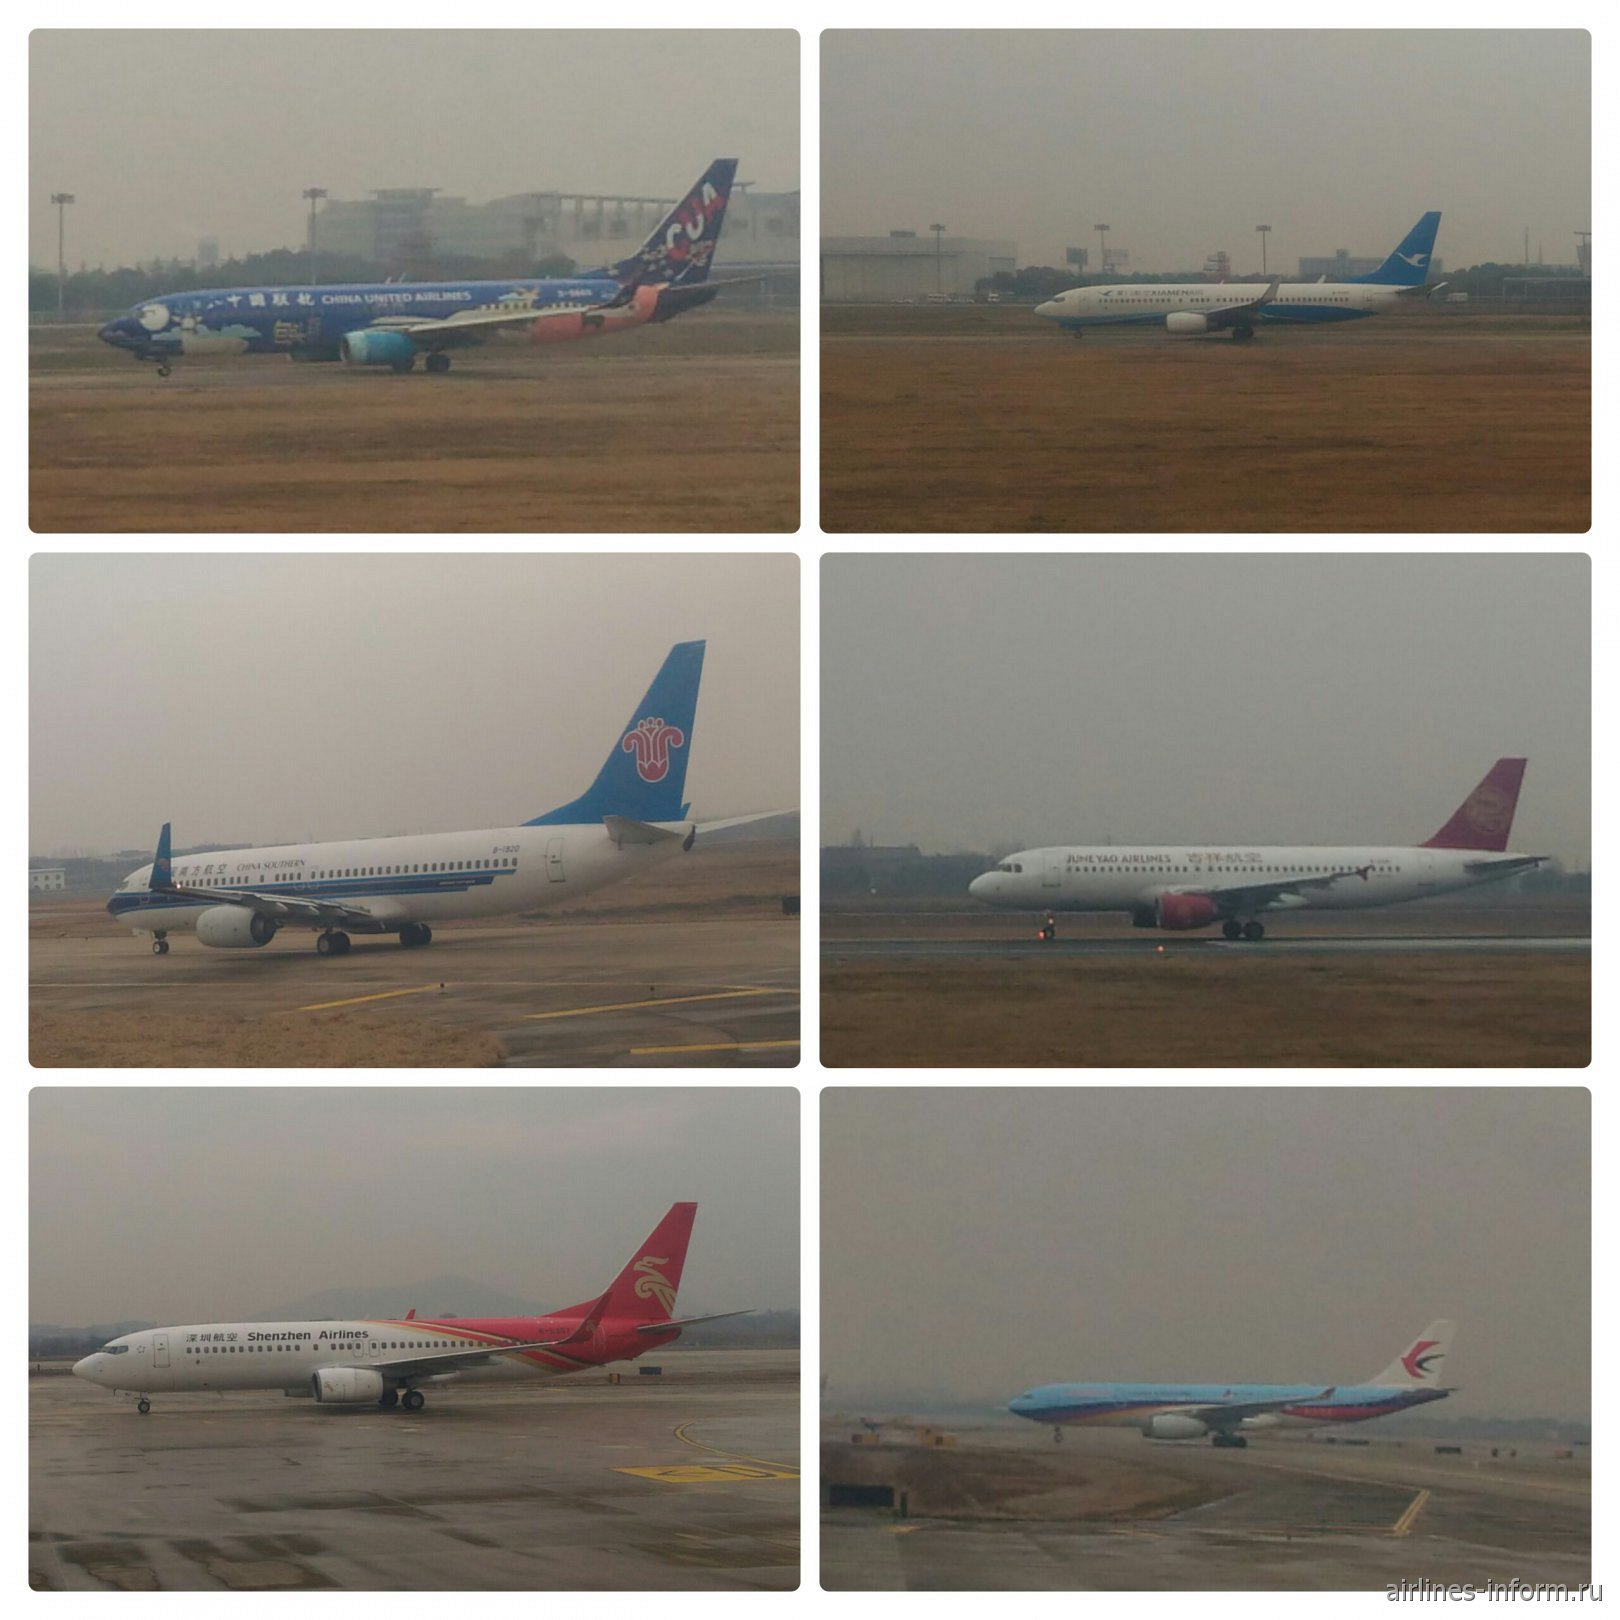 слева направо, сверху вниз: B-737 China United Airlines, B-737 Xiamen Air, B-737 China Southern Airlines, A320 Juneyao Airlines, B-737 Shenzhen Airlines, A333 China Eastern Airlines